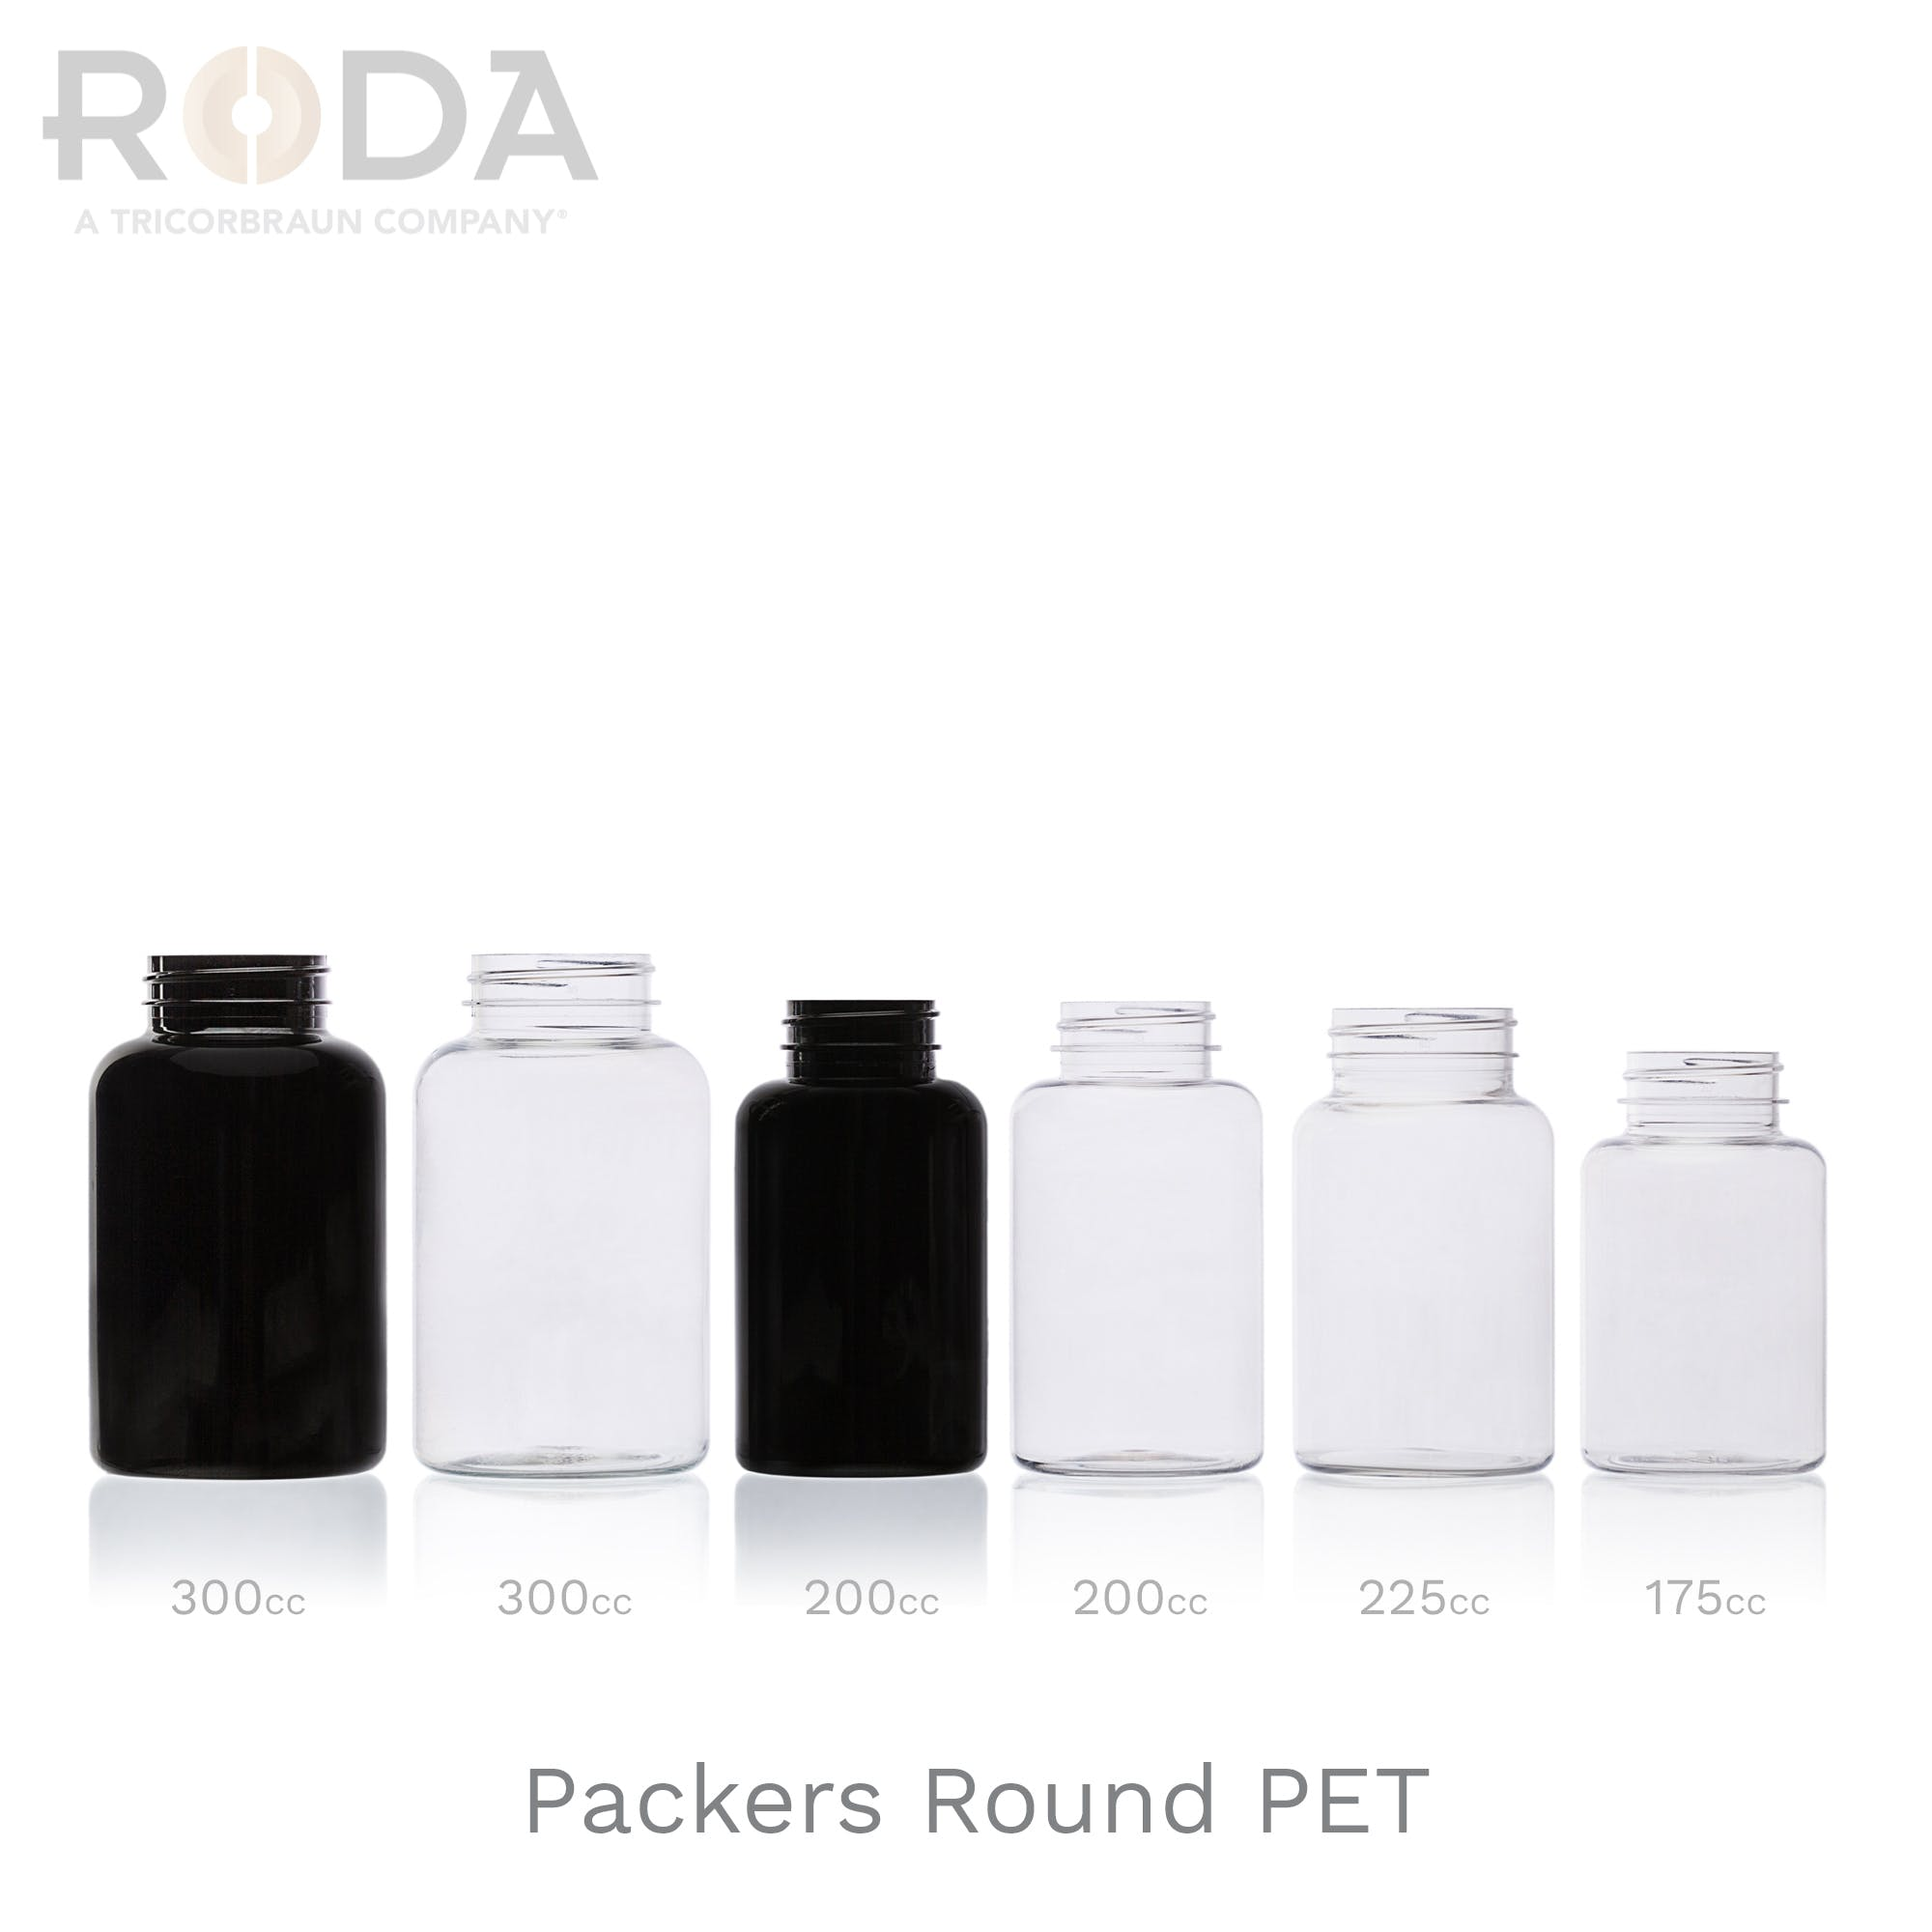 Packers Round PET